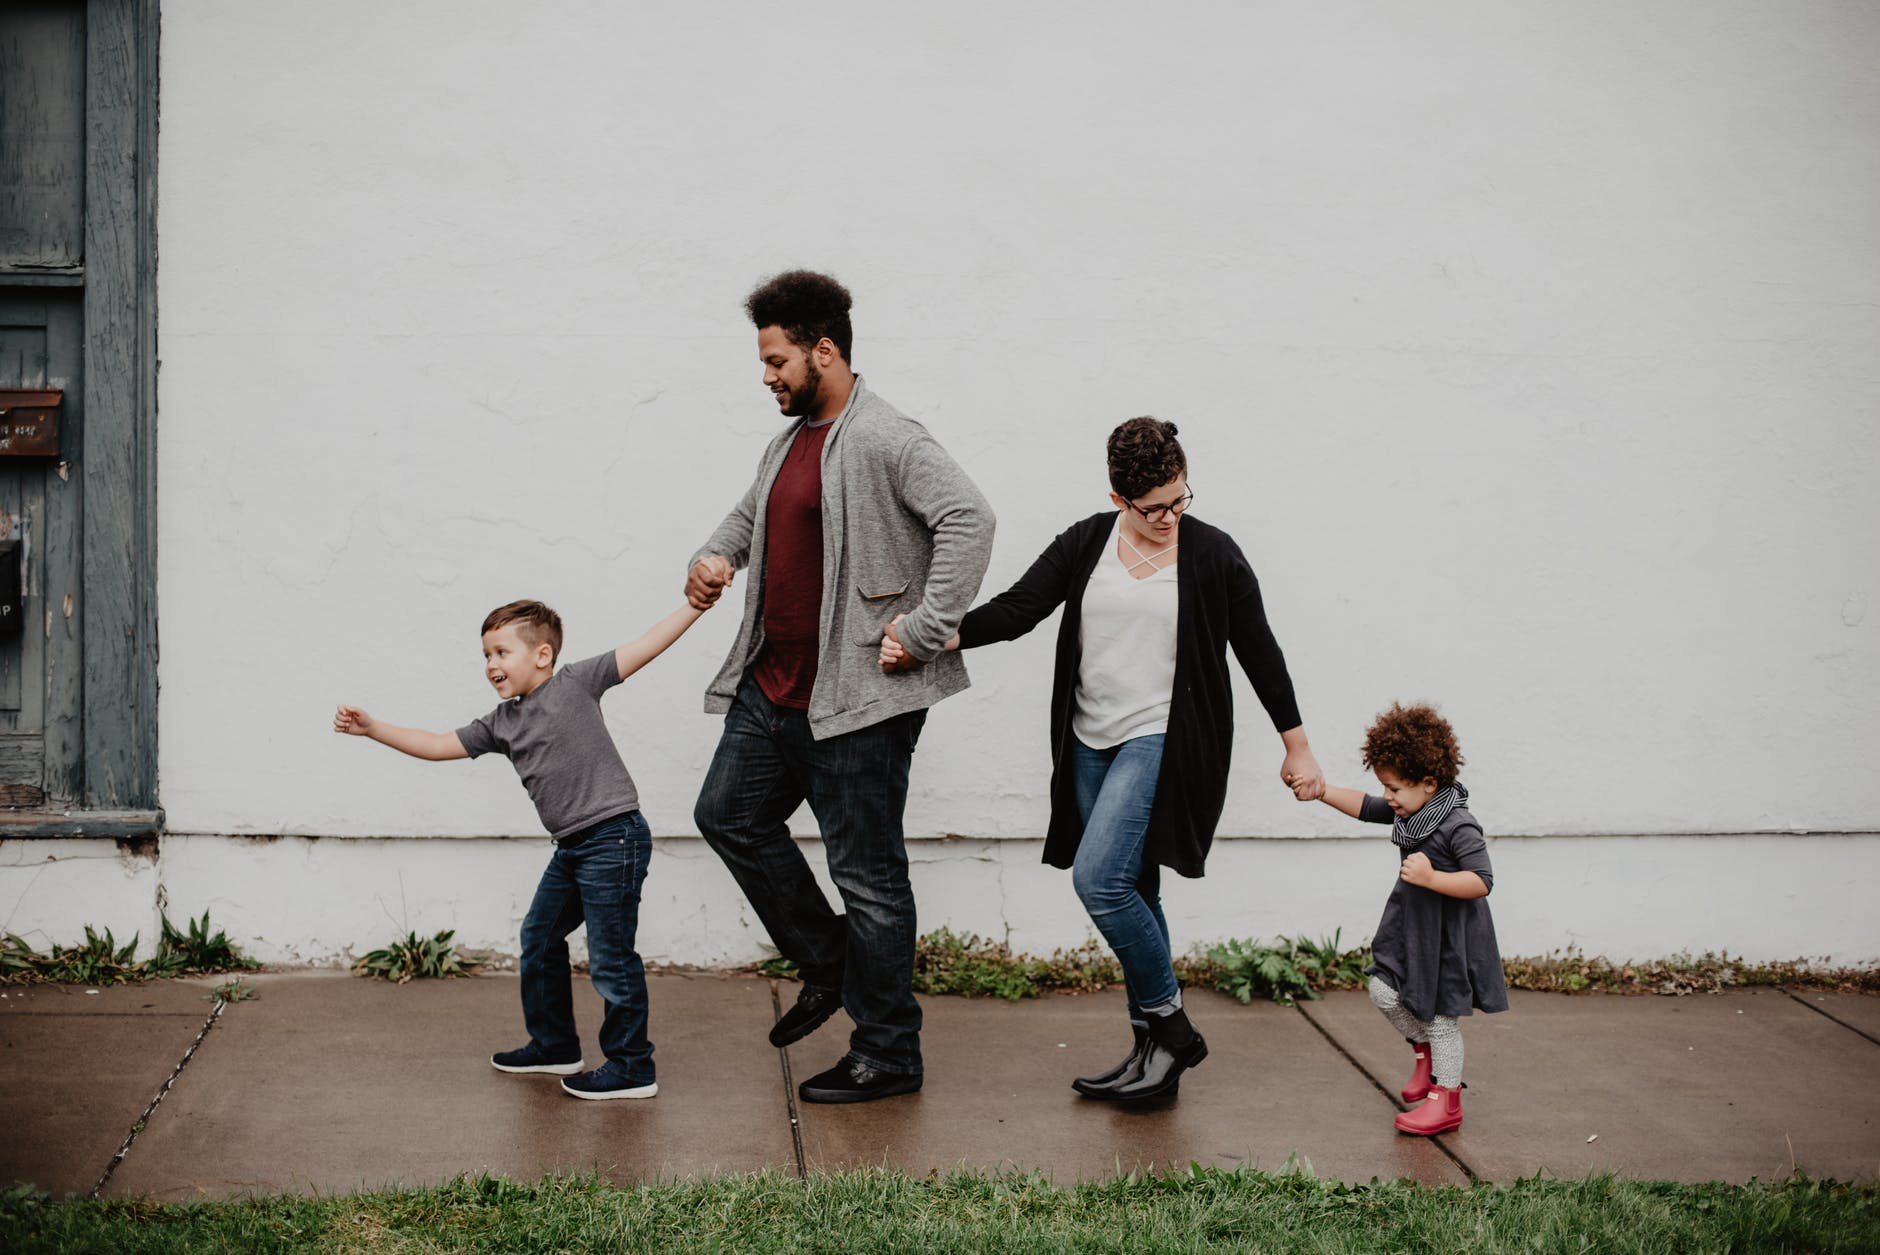 build wealth 30s family of four walking at the street